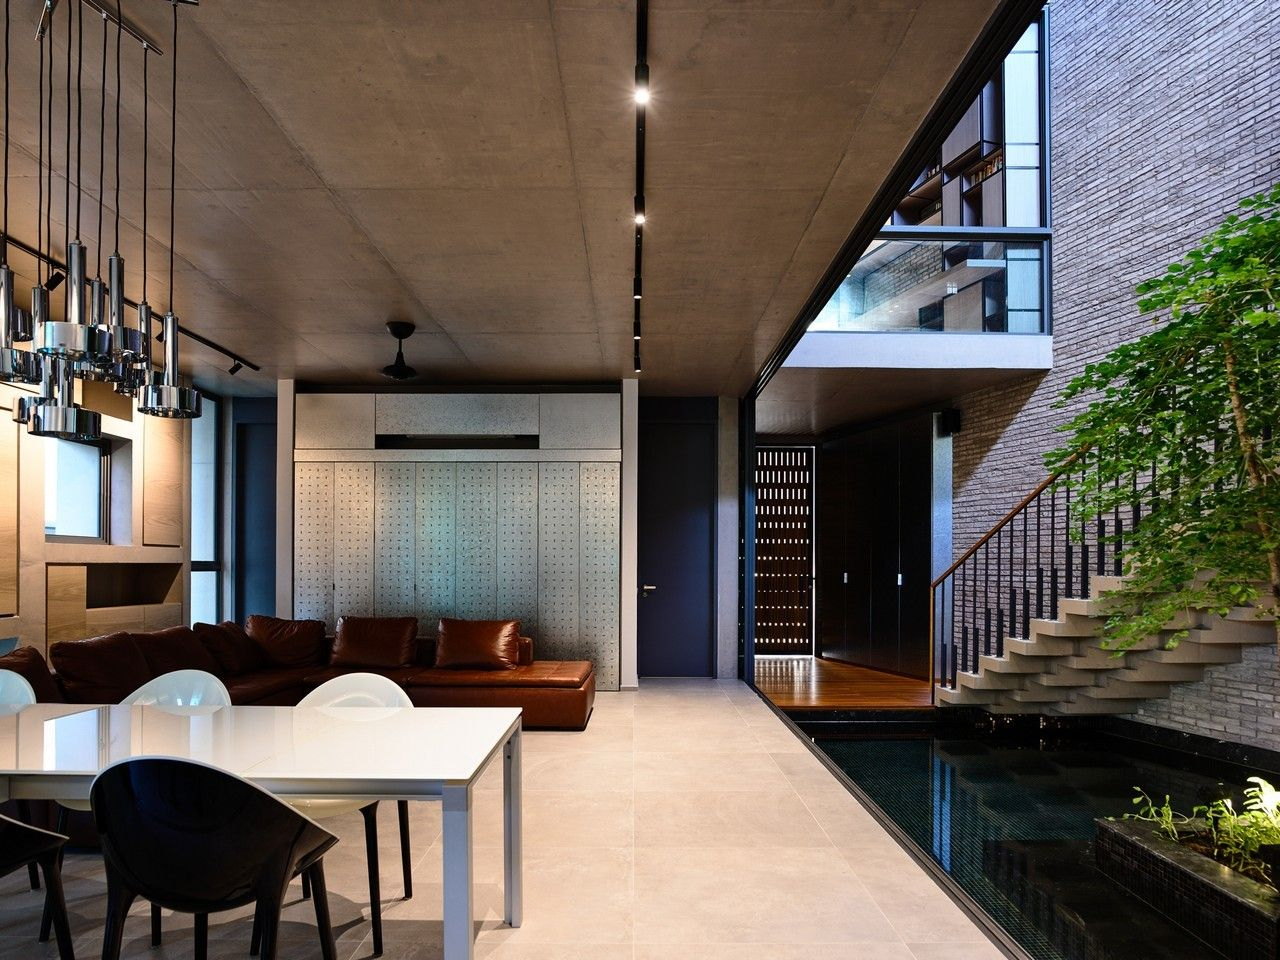 Gallery of surprising seclusion hyla architects scandinavian interior design modern also tranquil house  brutalist tour de force in suburban japan jaw rh pinterest